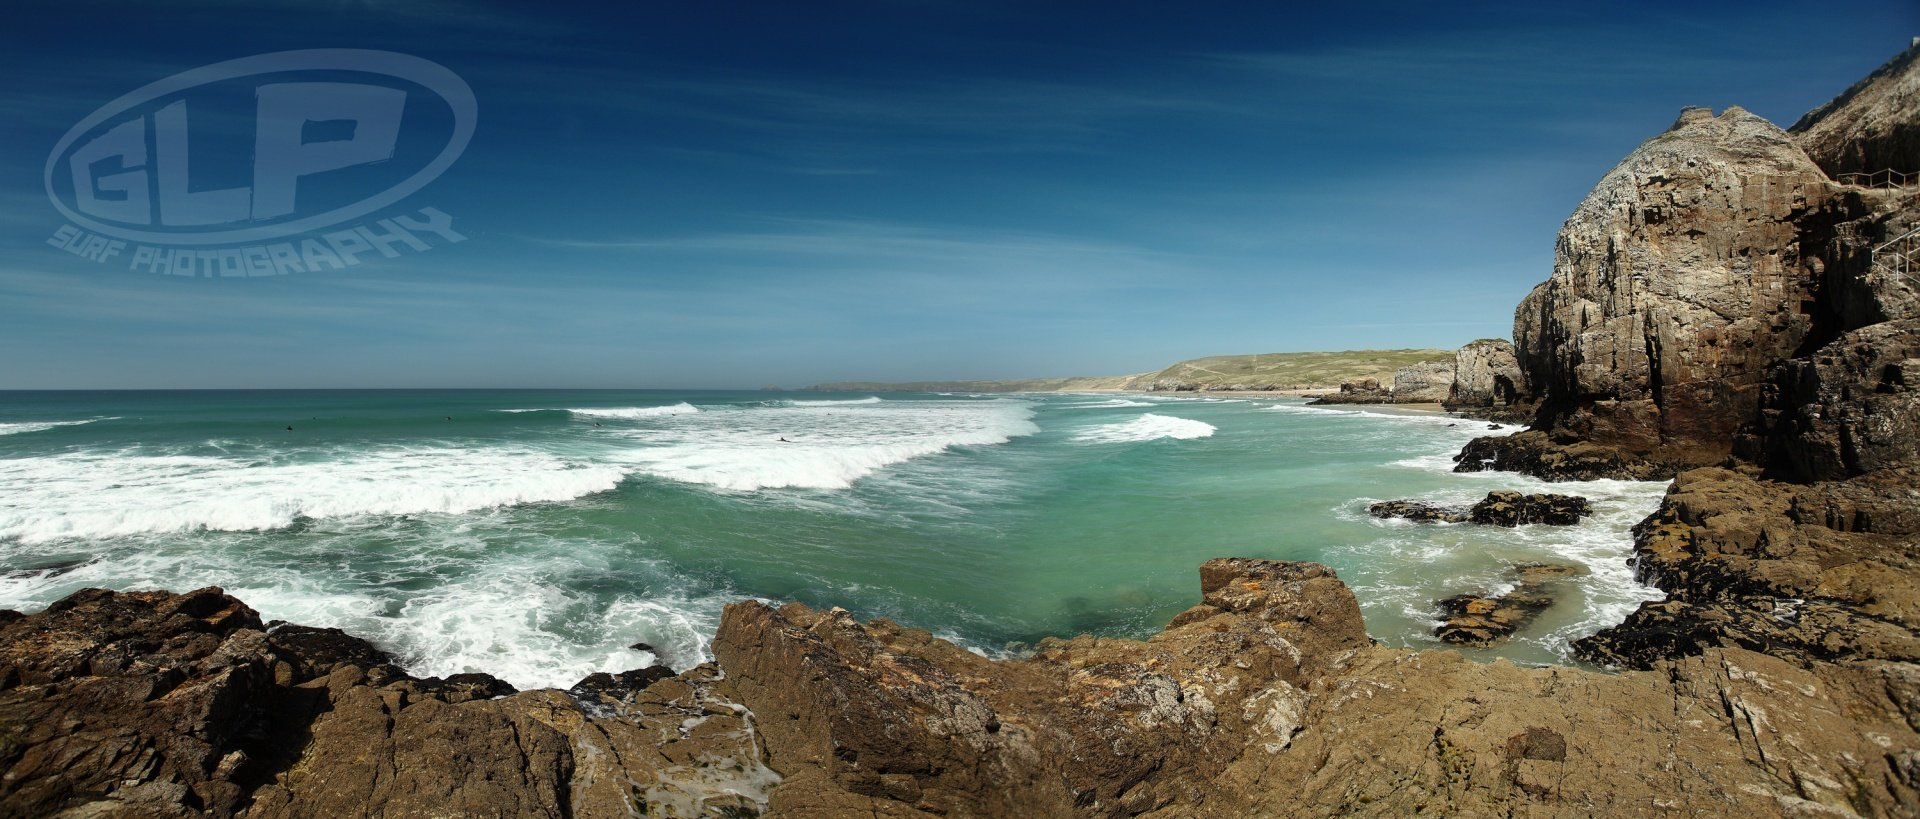 Grant Lampard's photo of Perranporth (Droskyn)